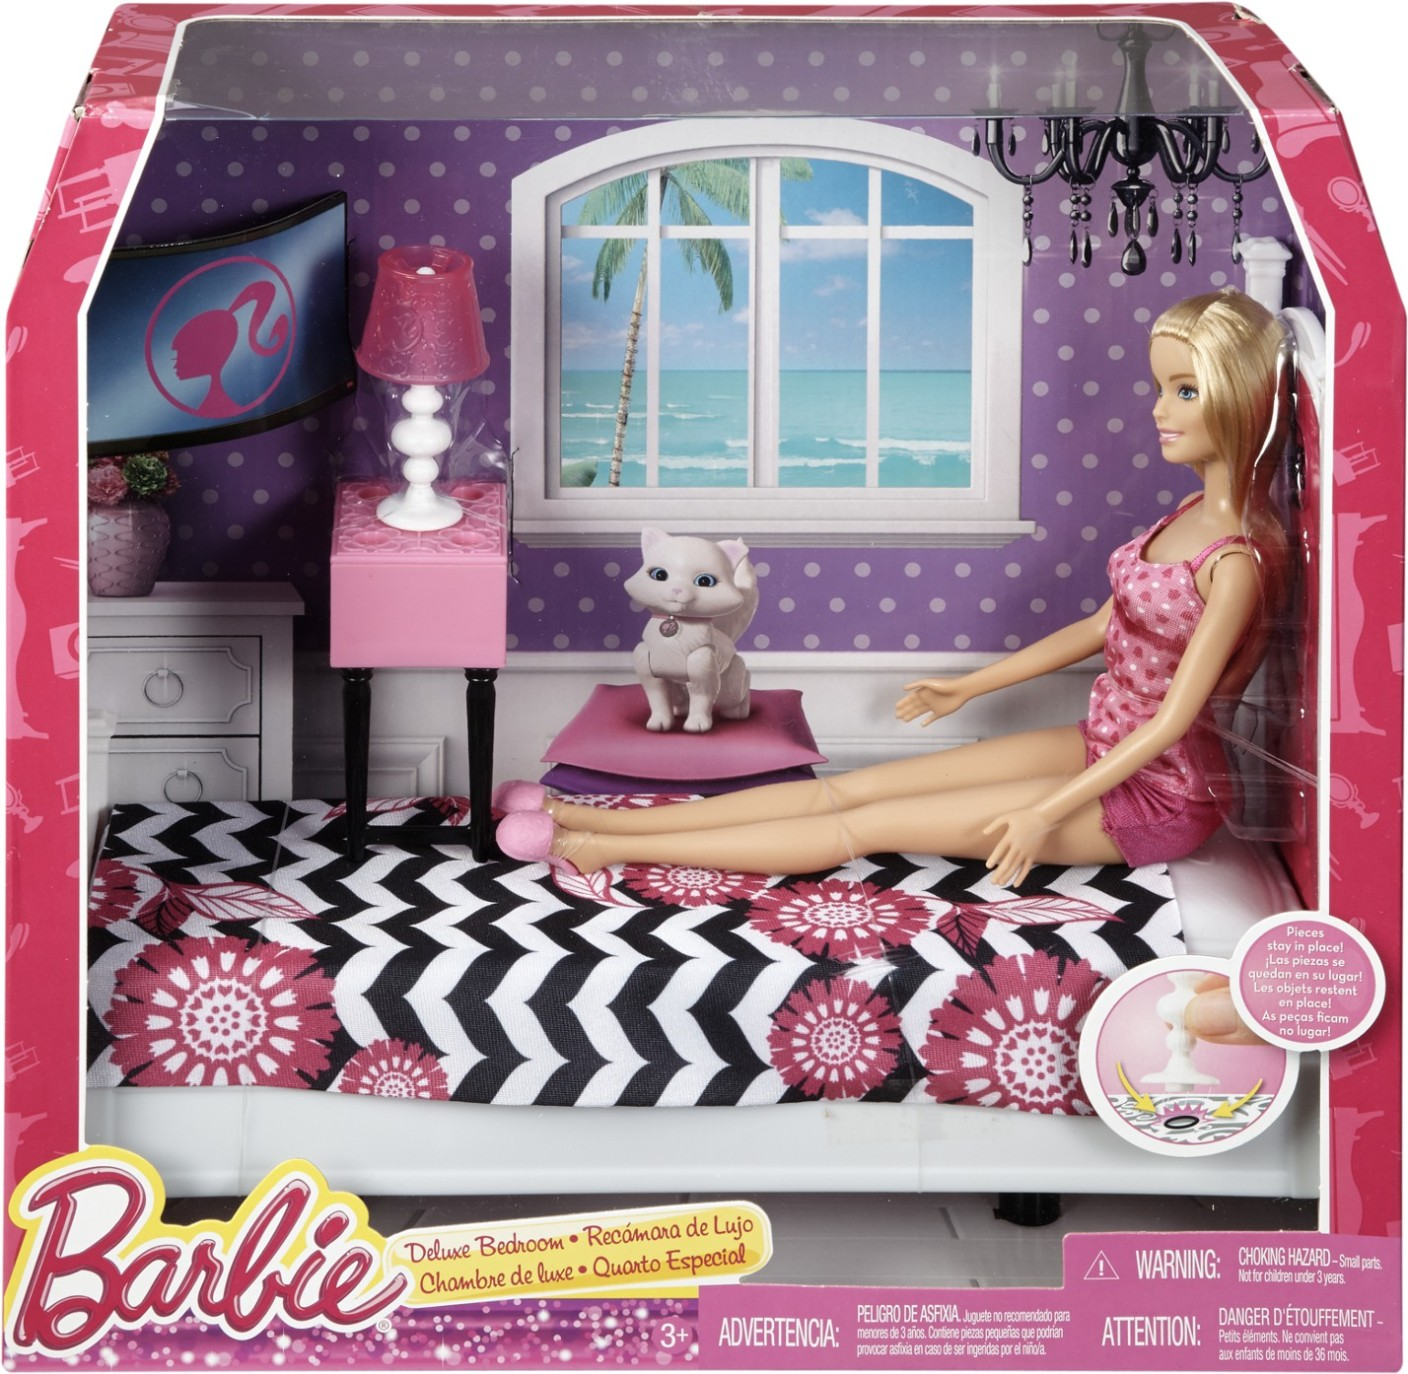 Barbie Deluxe Bedroom. Share